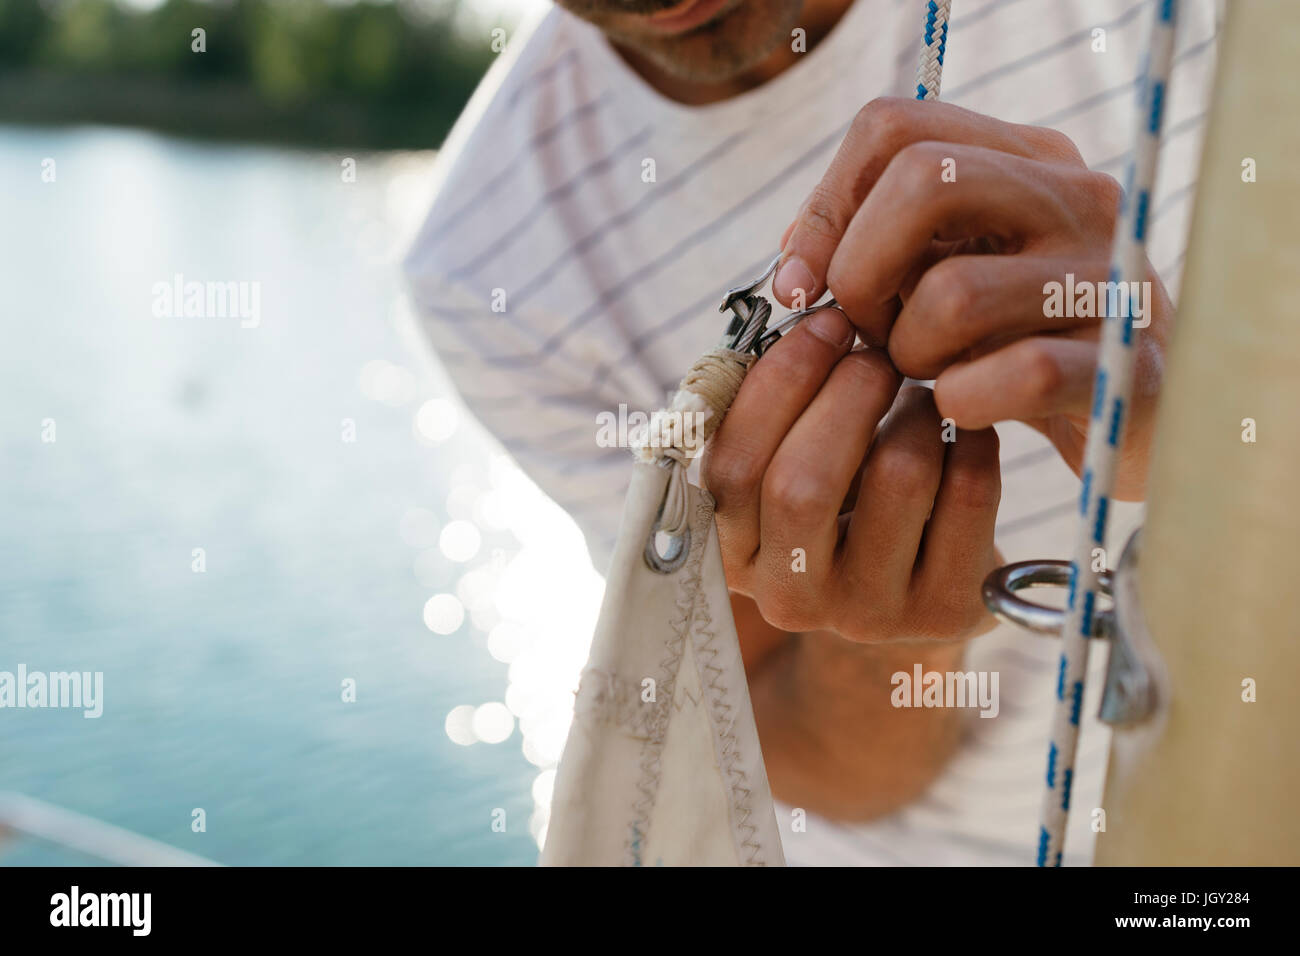 Man on sailing boat, attaching sail to mast, close-up - Stock Image